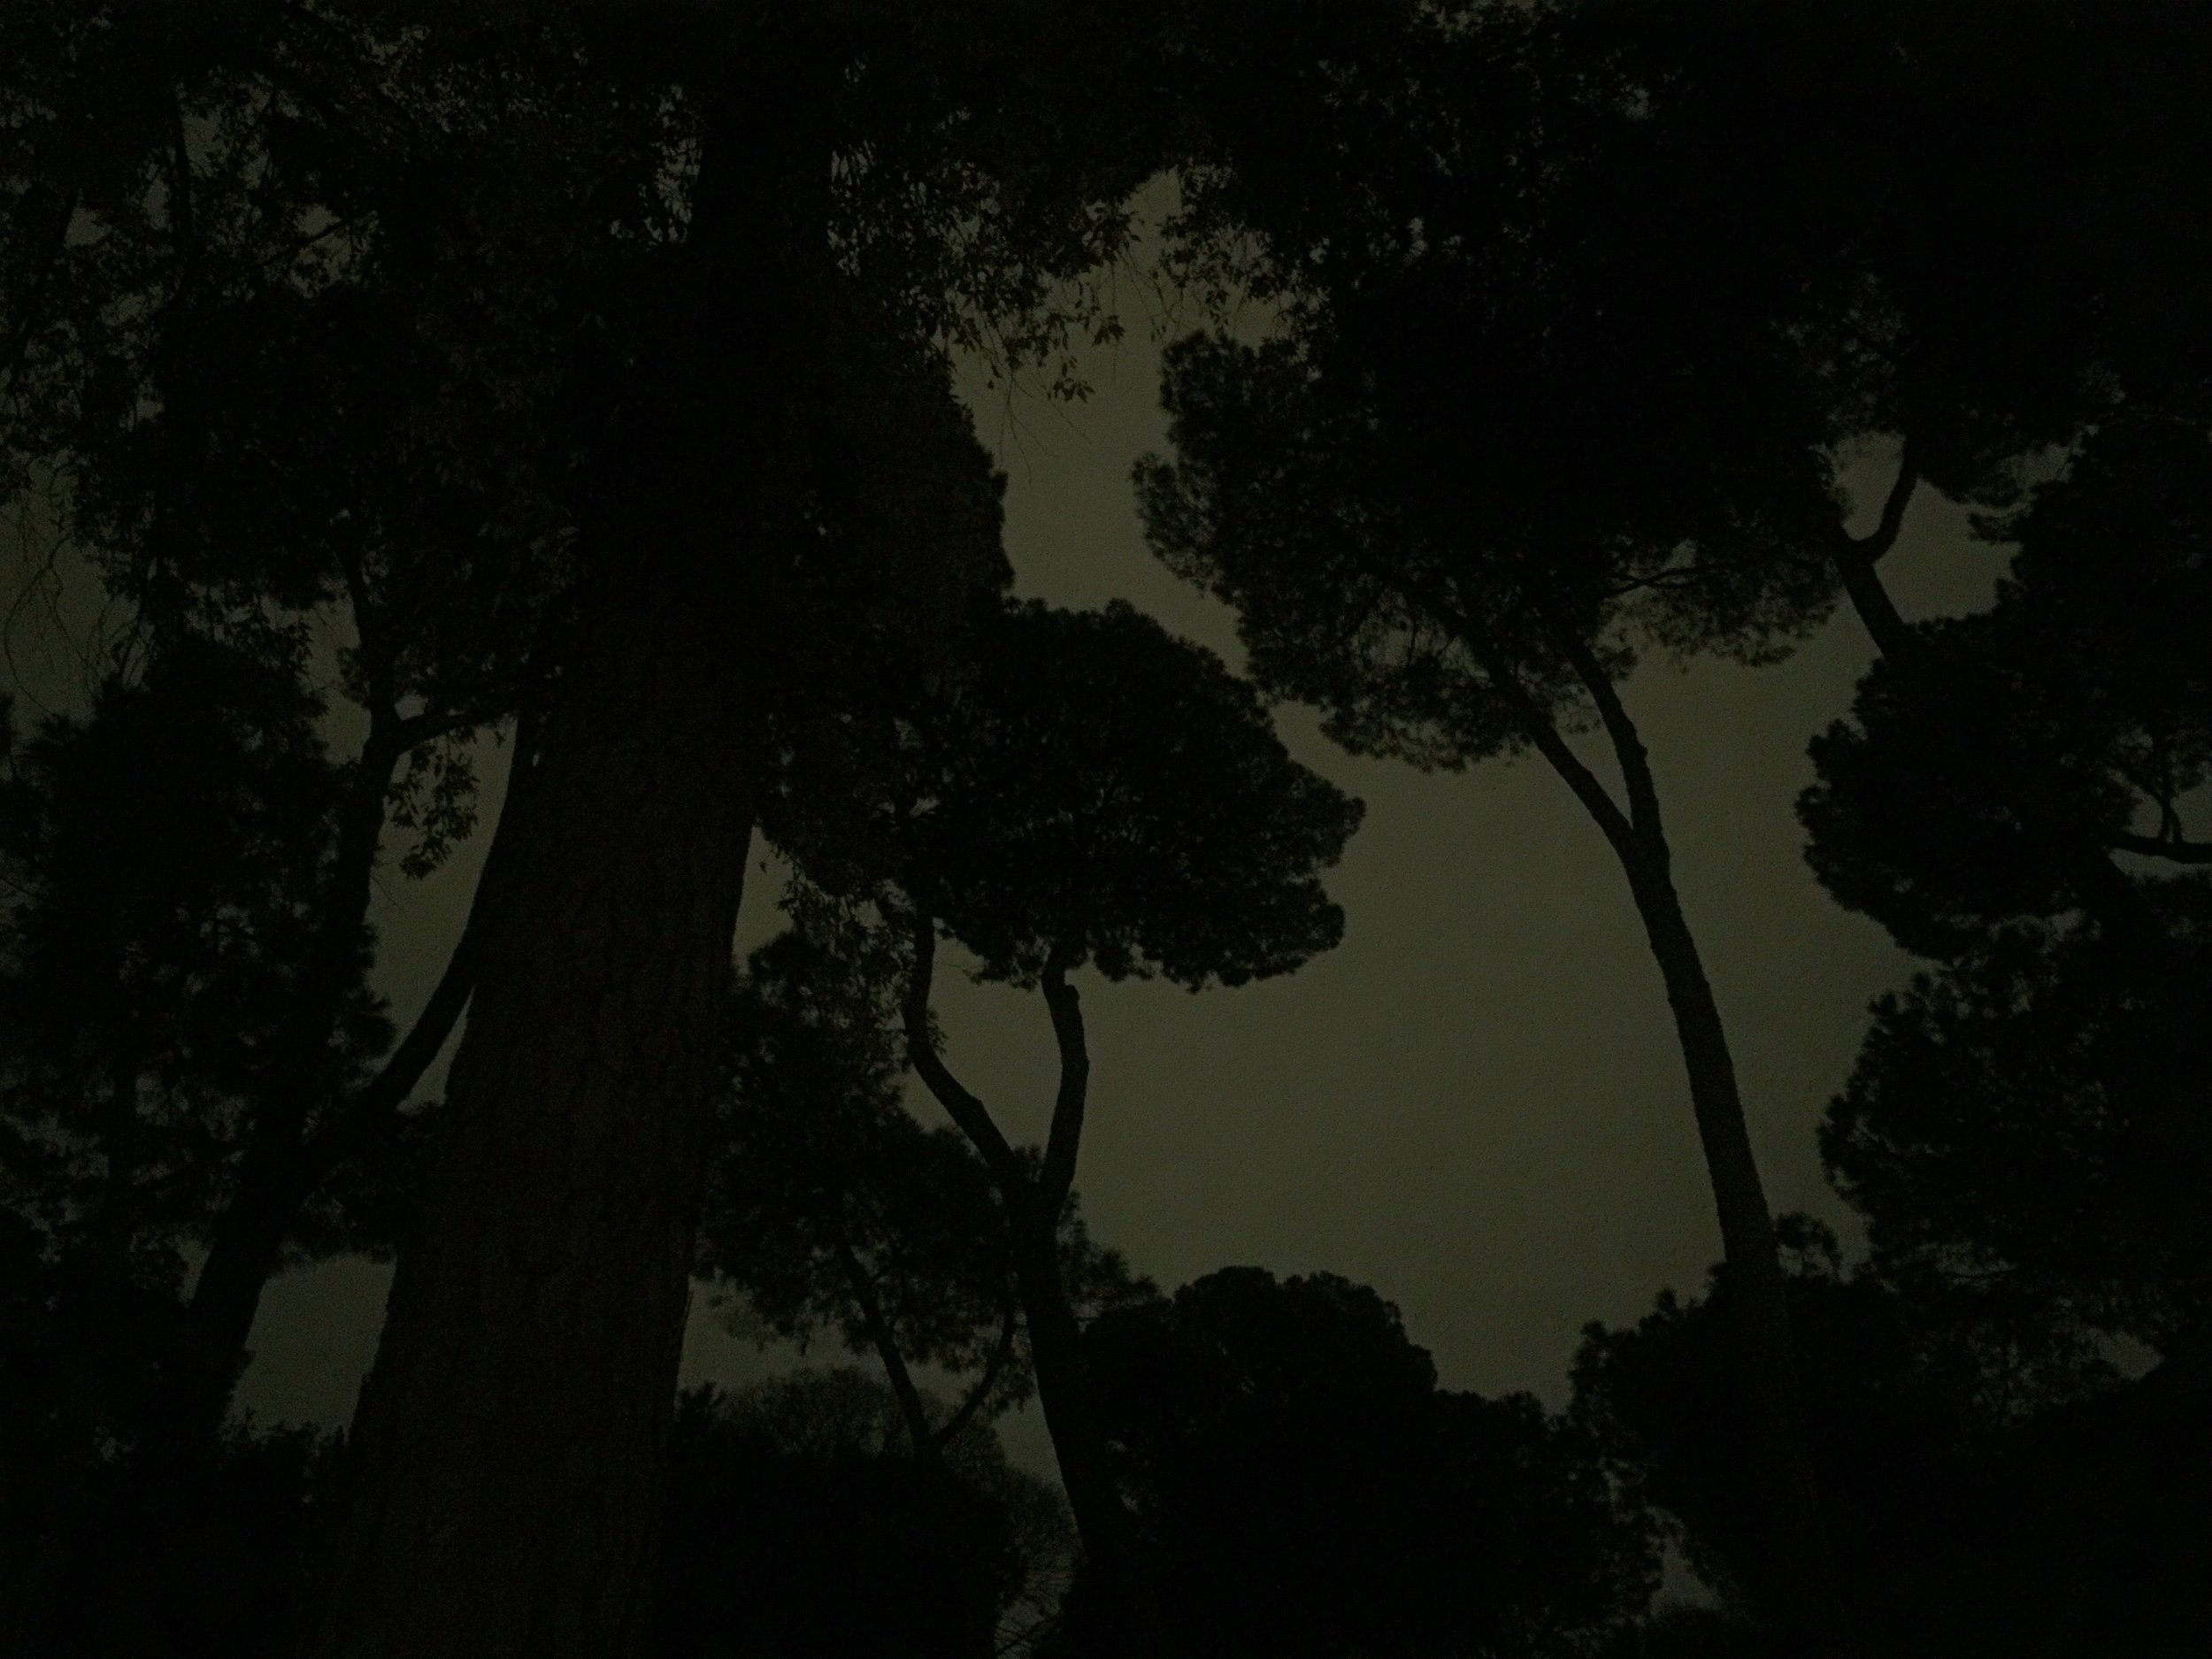 borgh trees at night.jpg